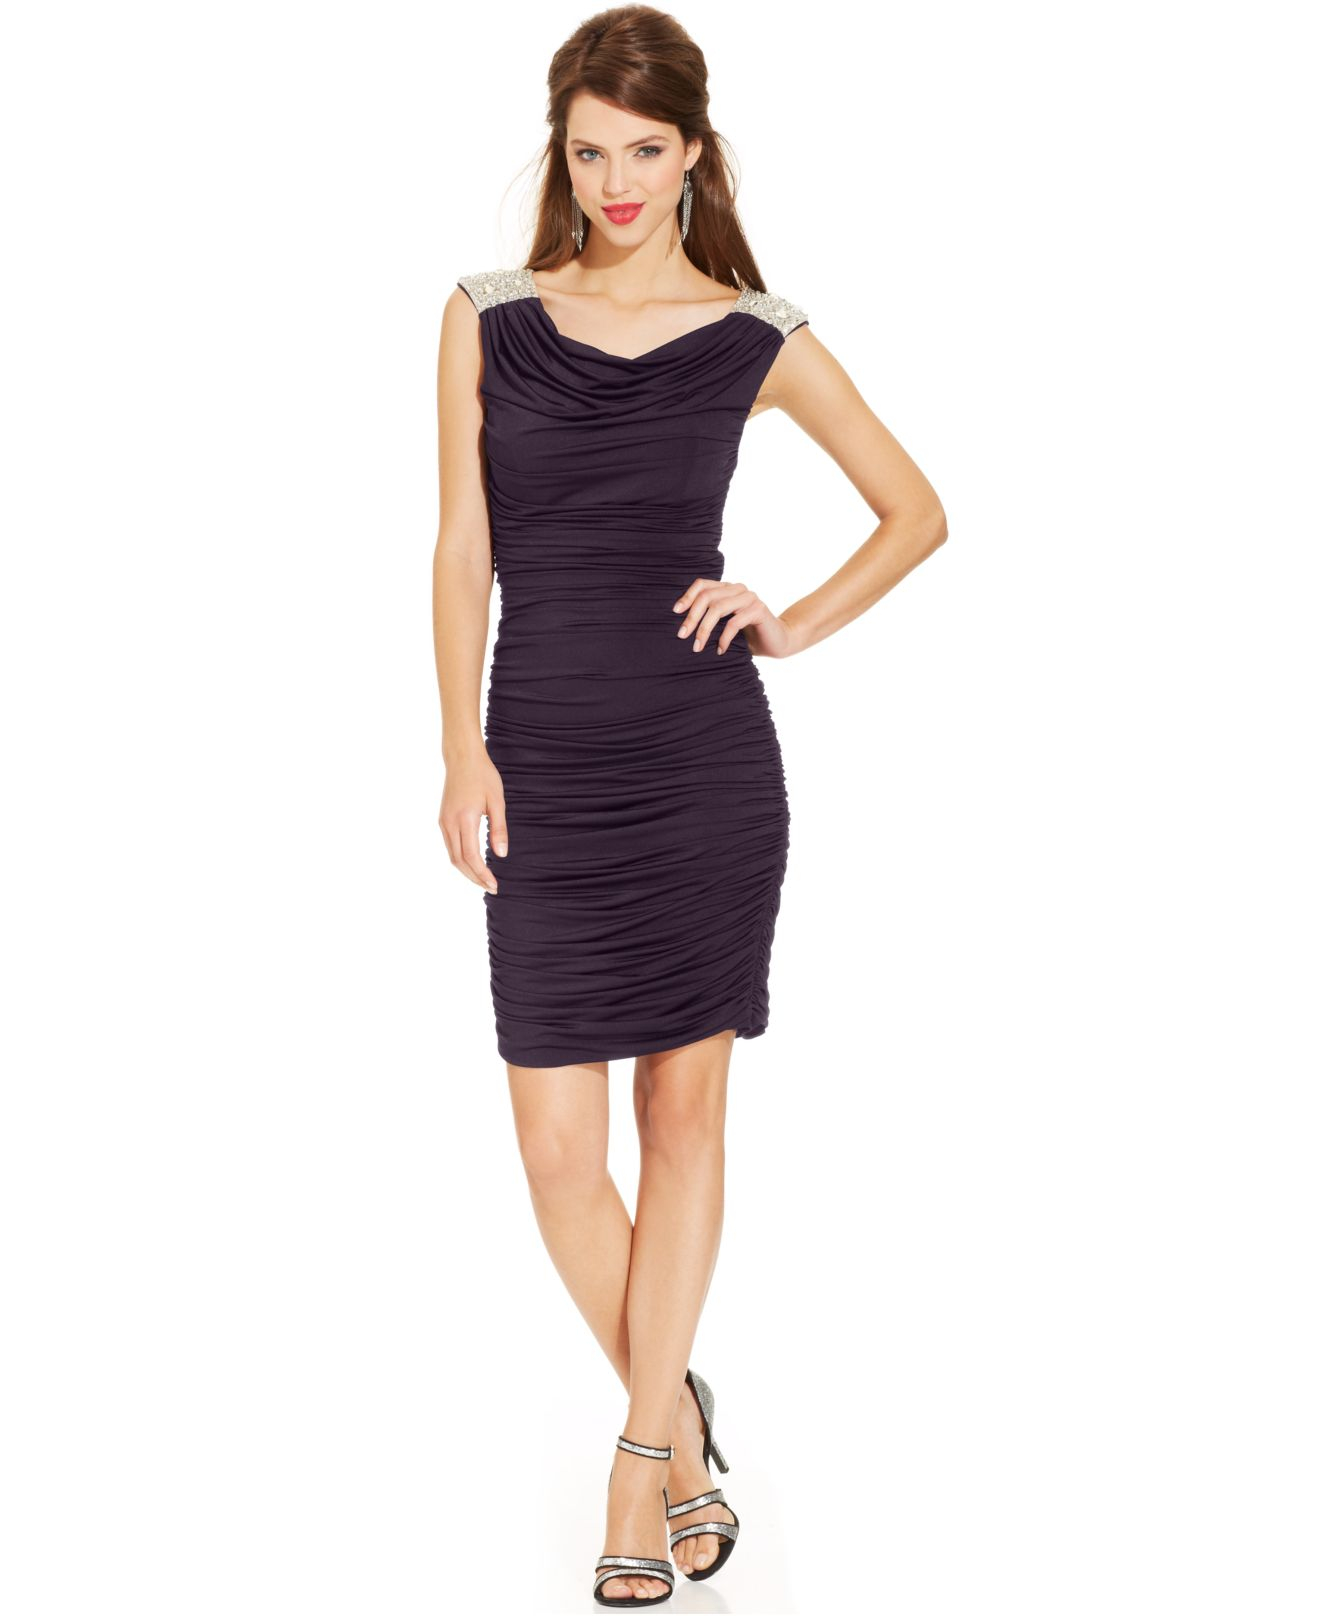 JS Boutique Embellished Ruched Dress